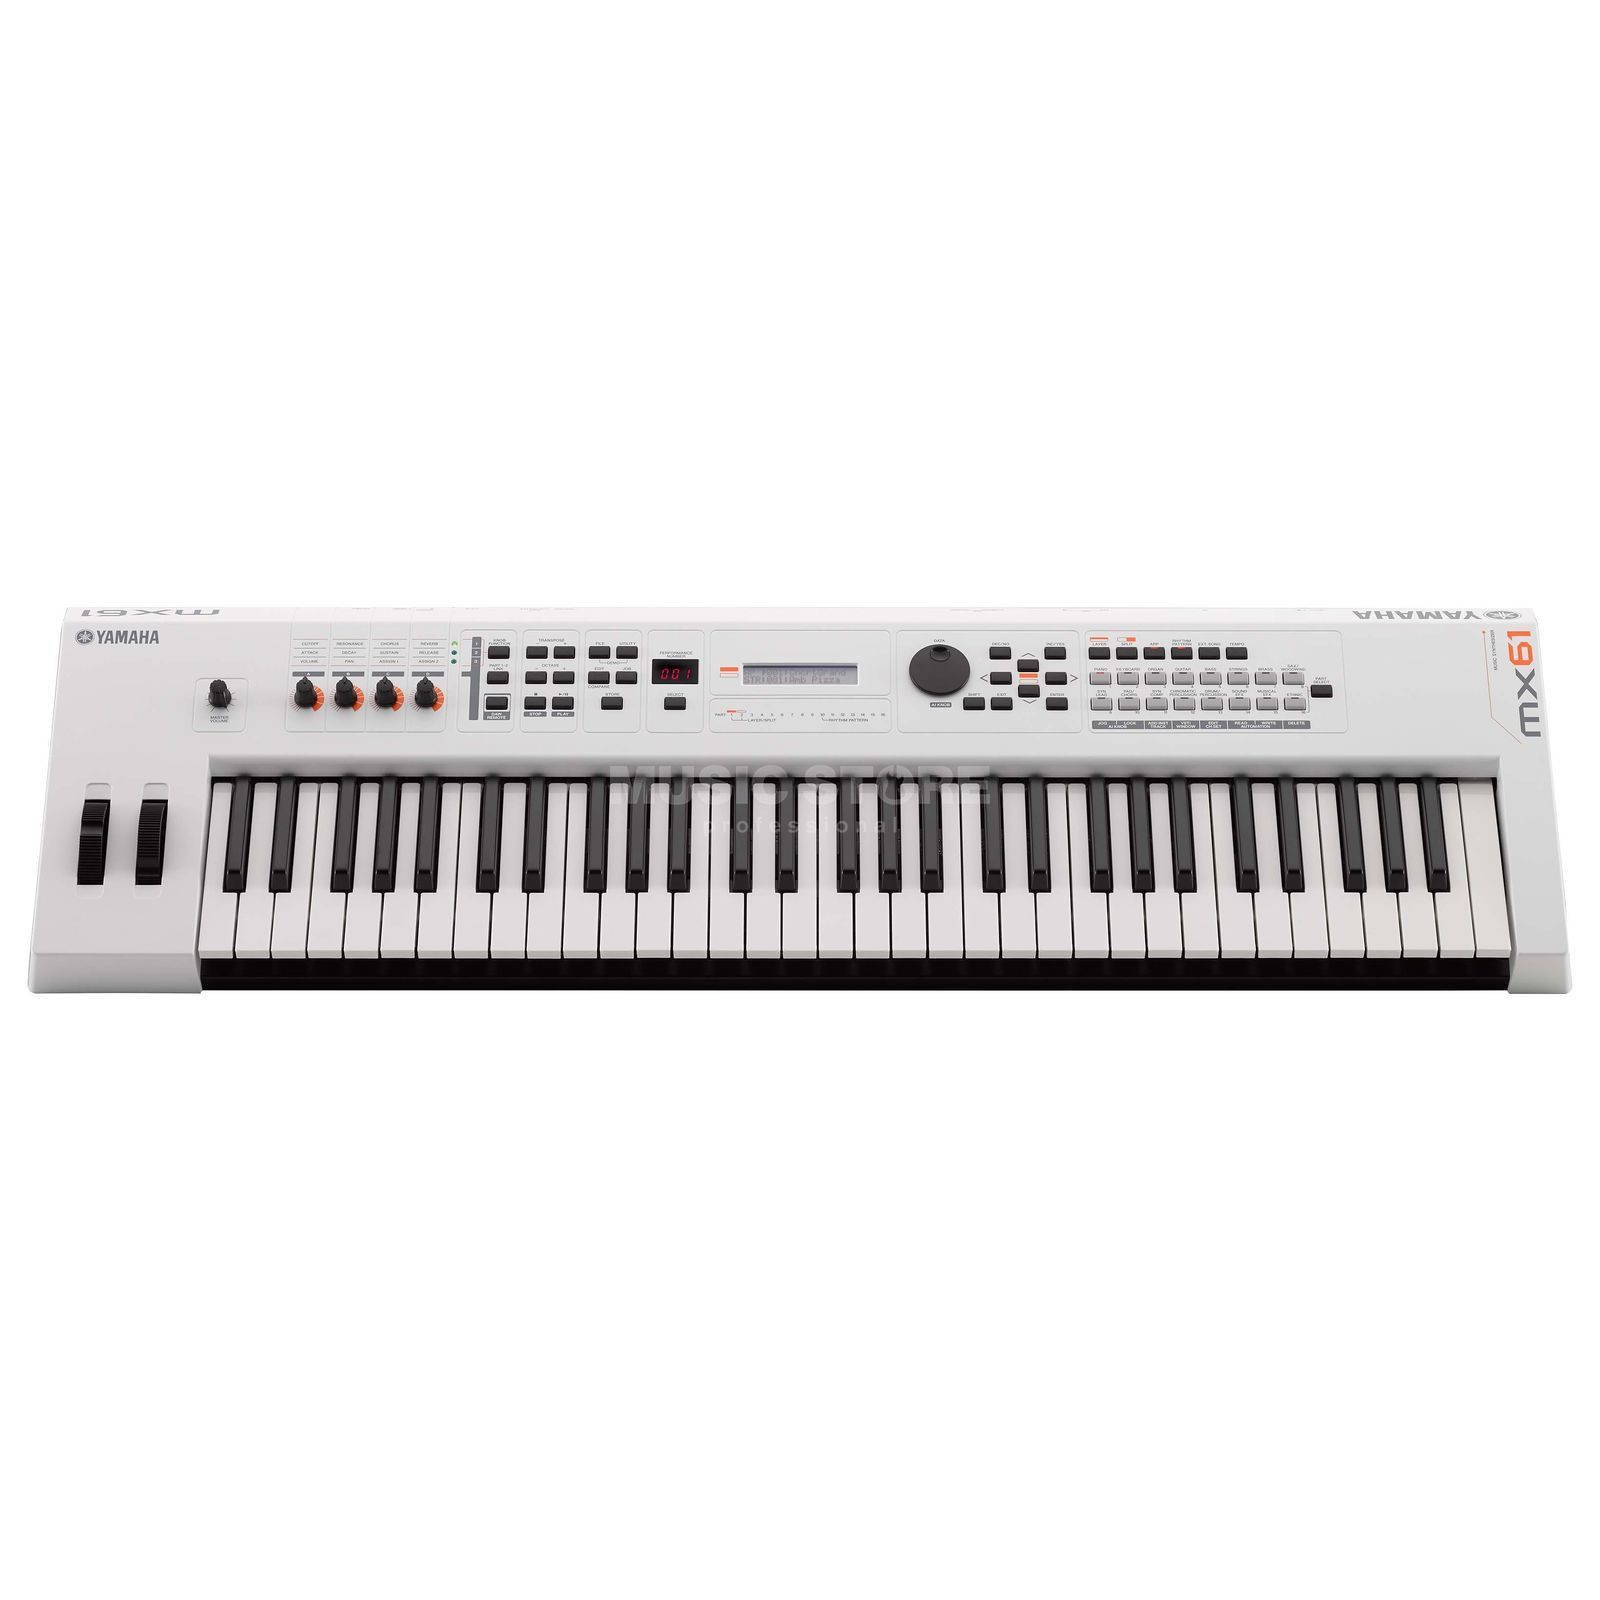 Yamaha MX61 II WH white Produktbillede